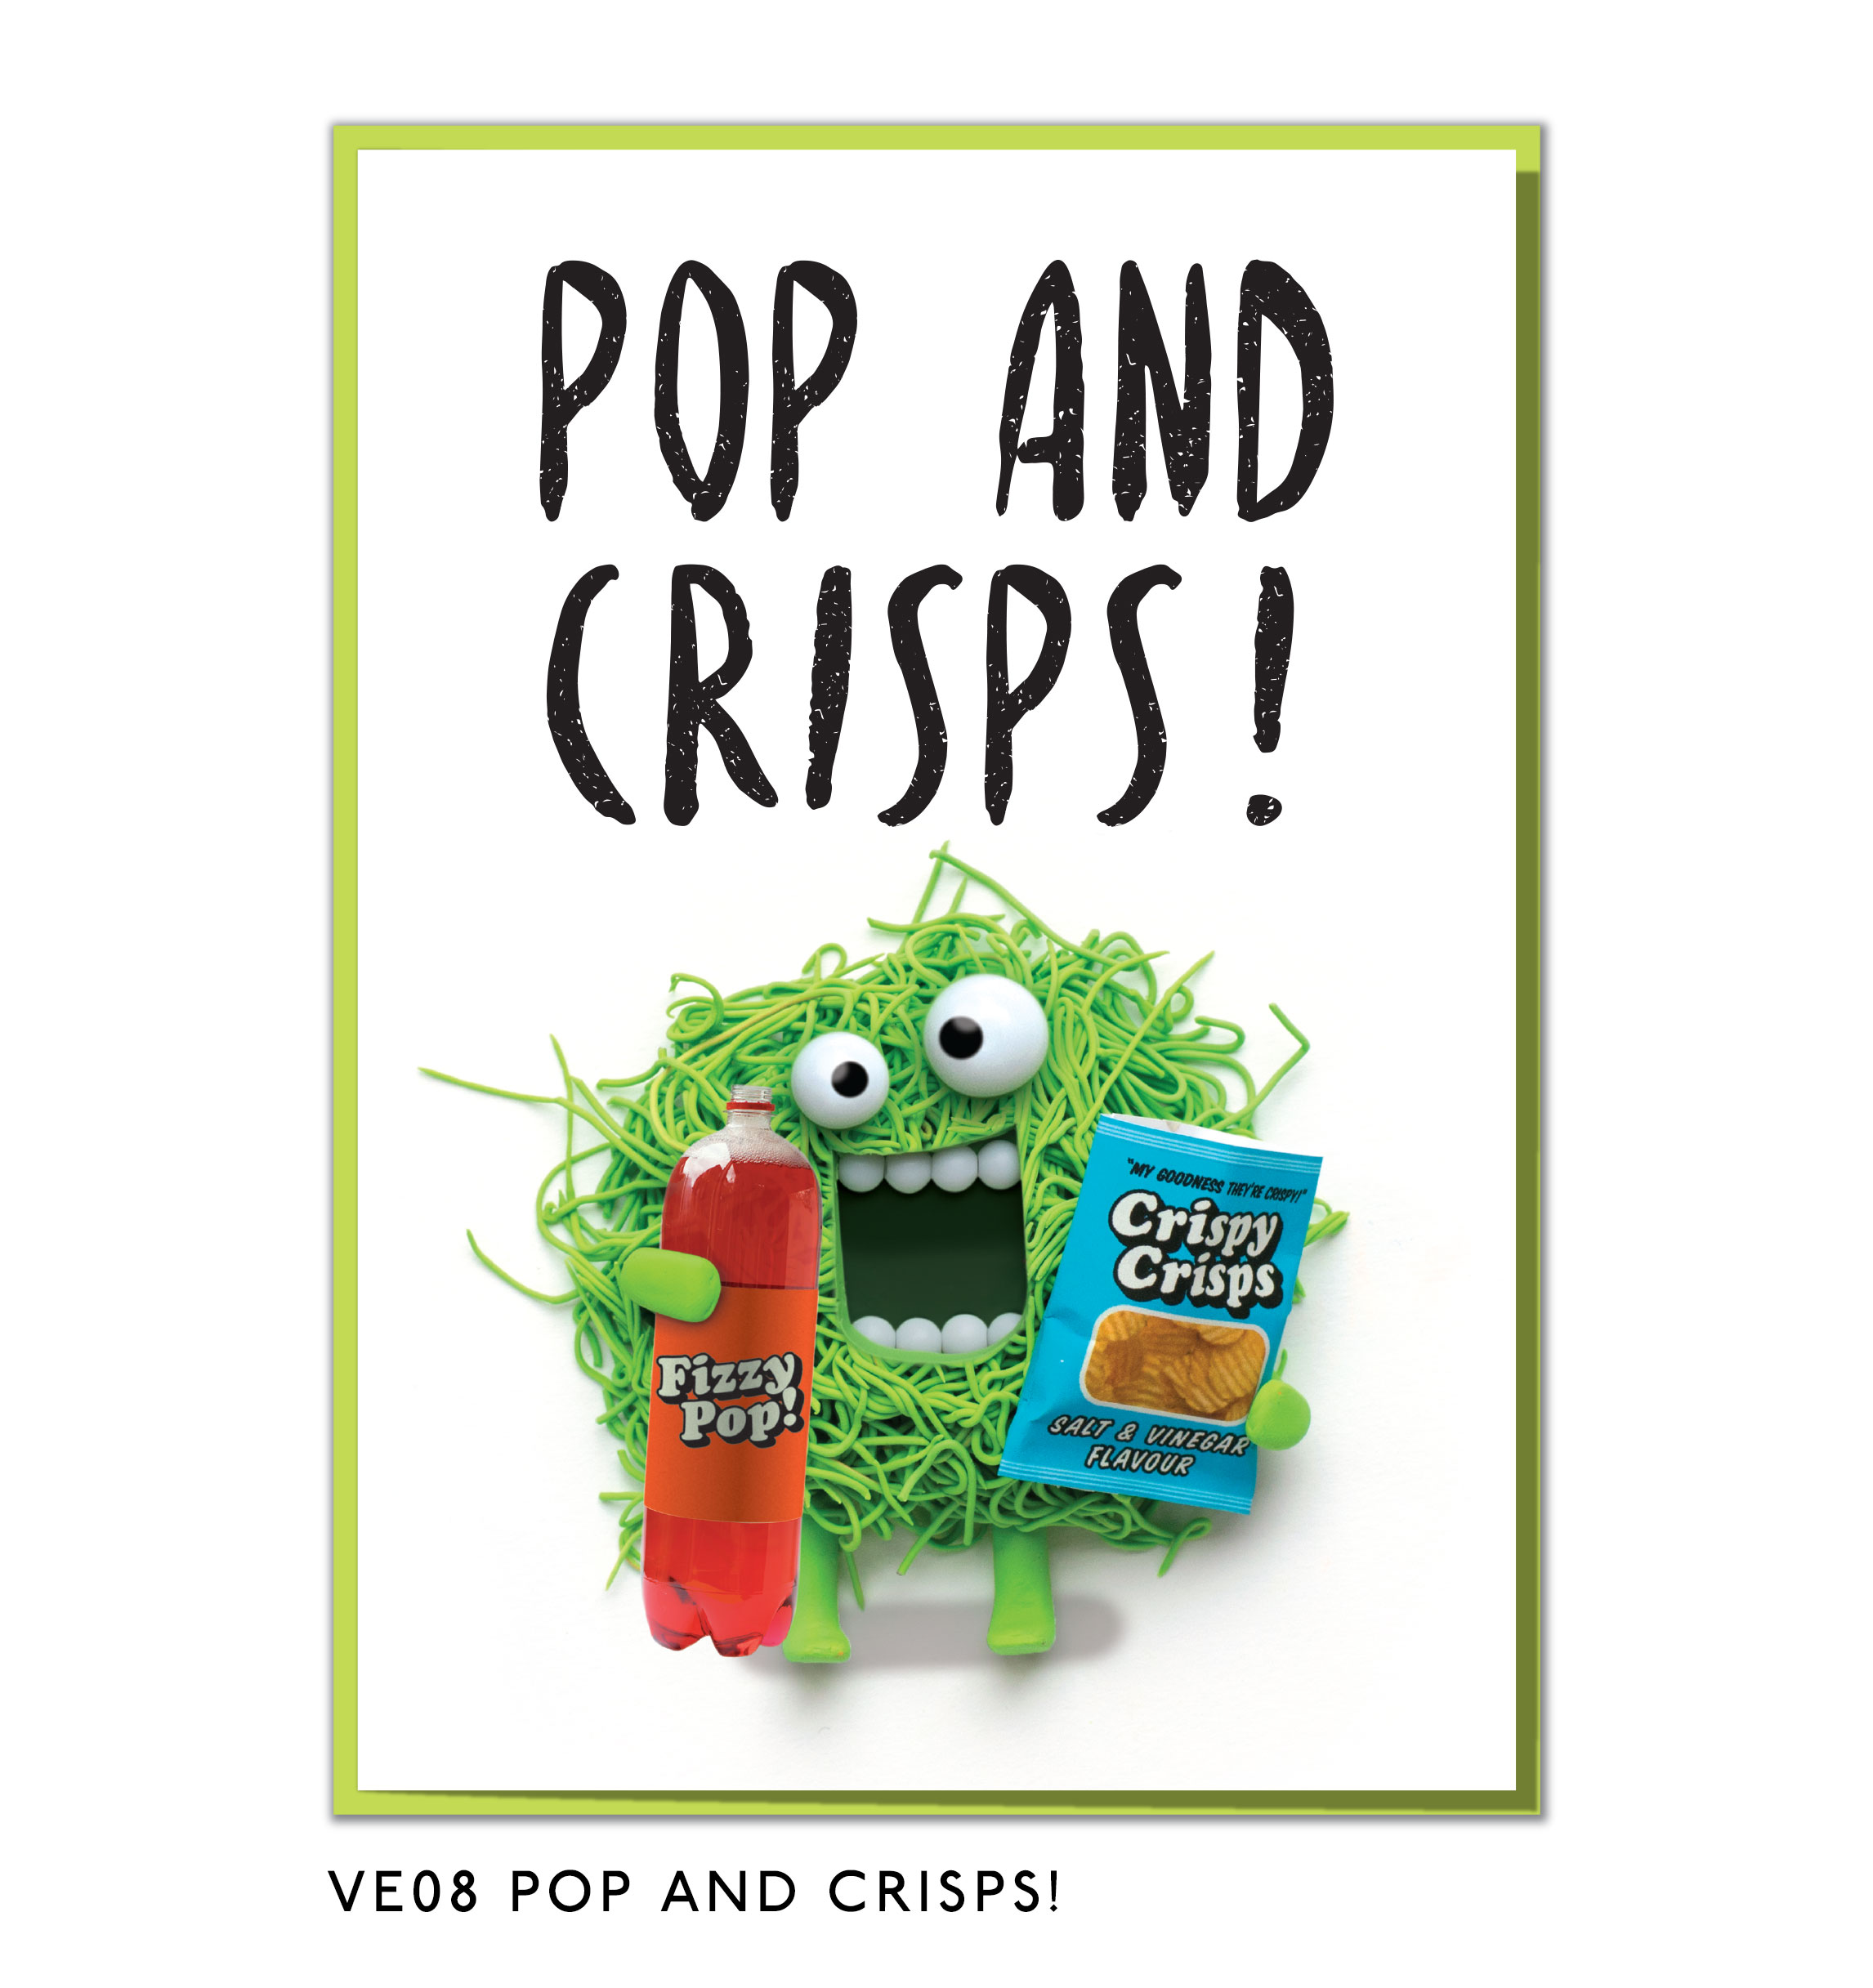 VE08-POP-AND-CRISPS.jpg